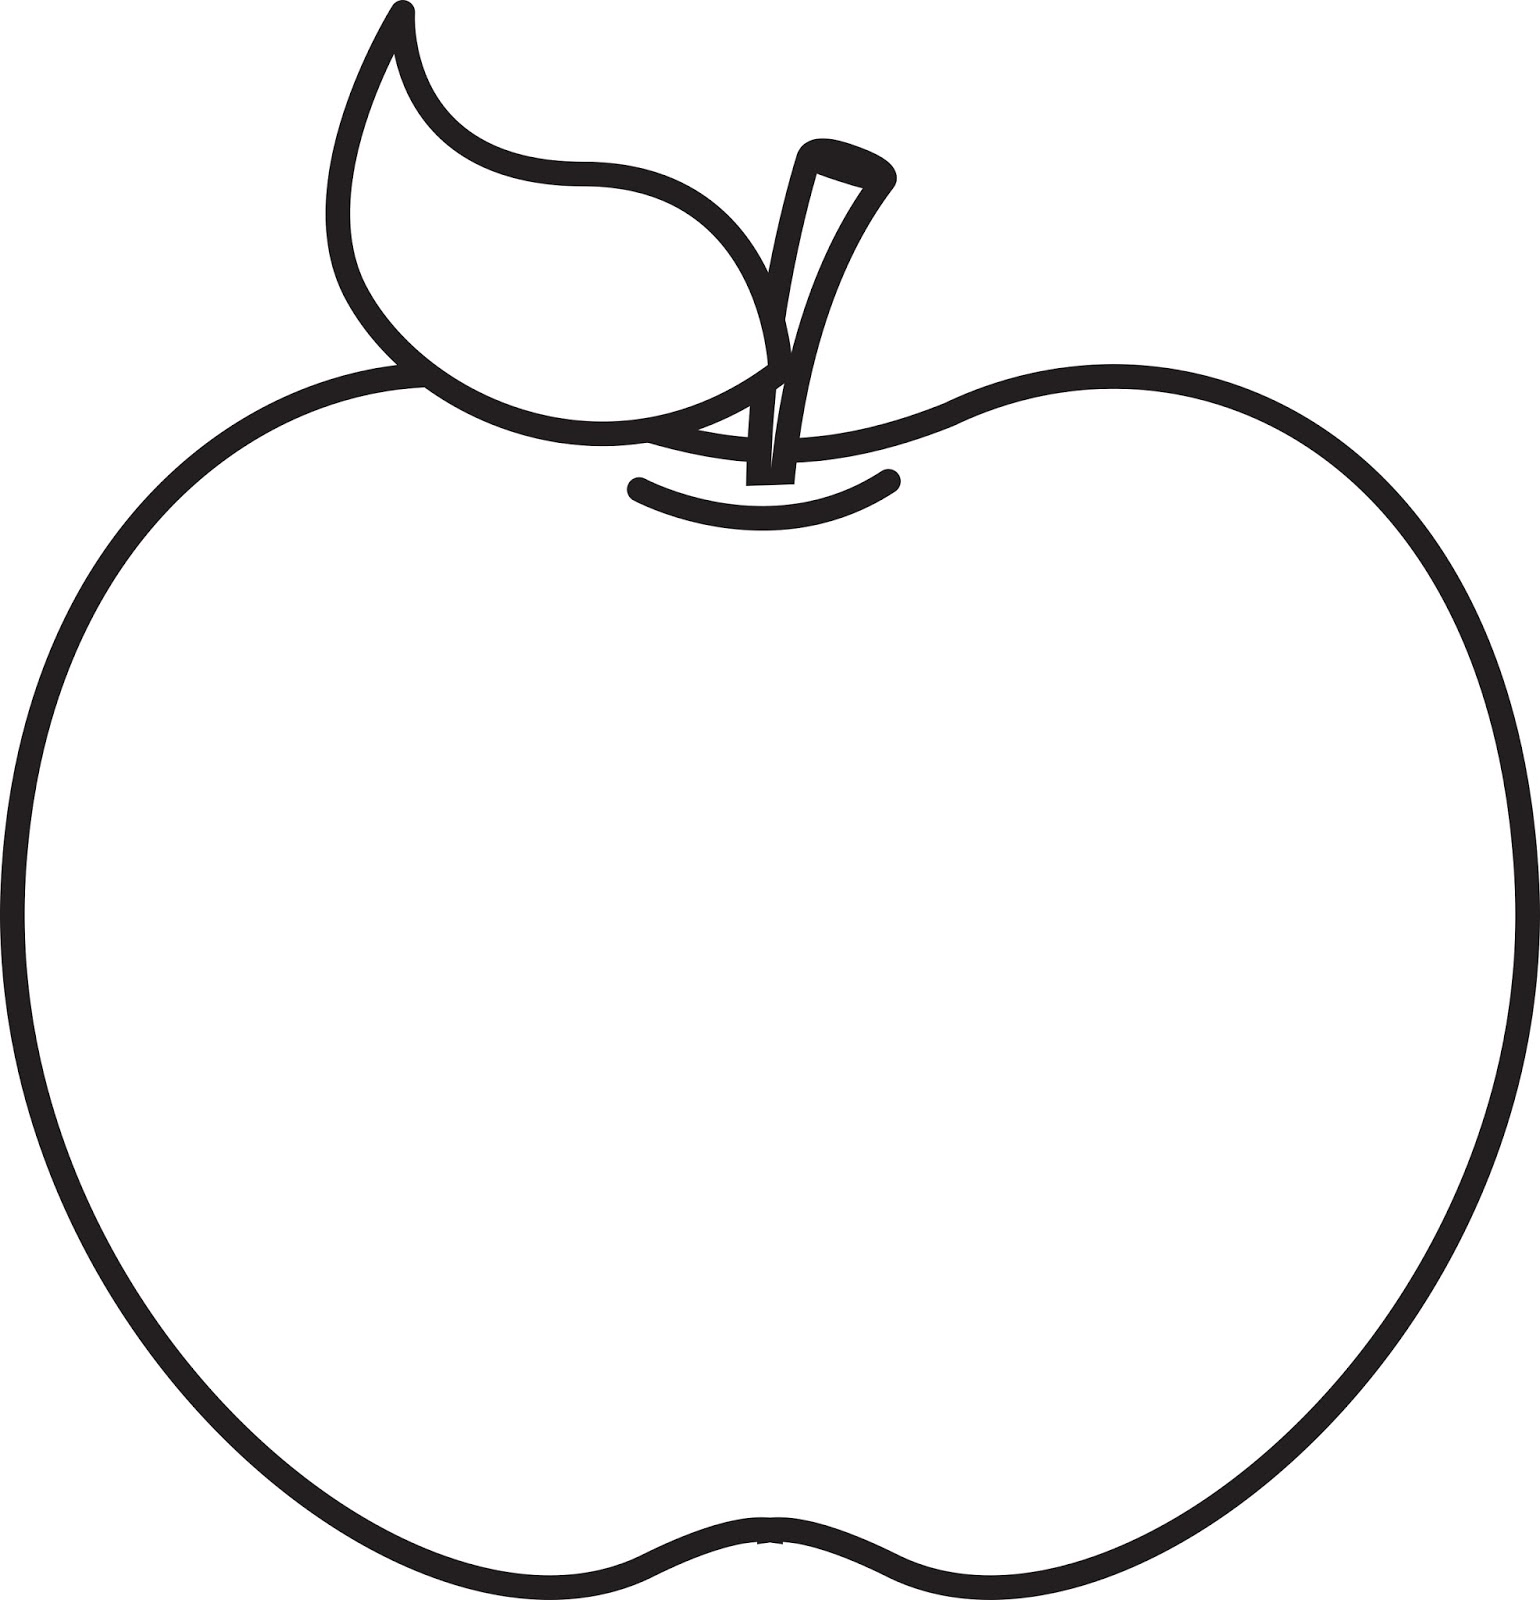 1540x1600 Apple Black White Black And White Apple Clipart Clip Art